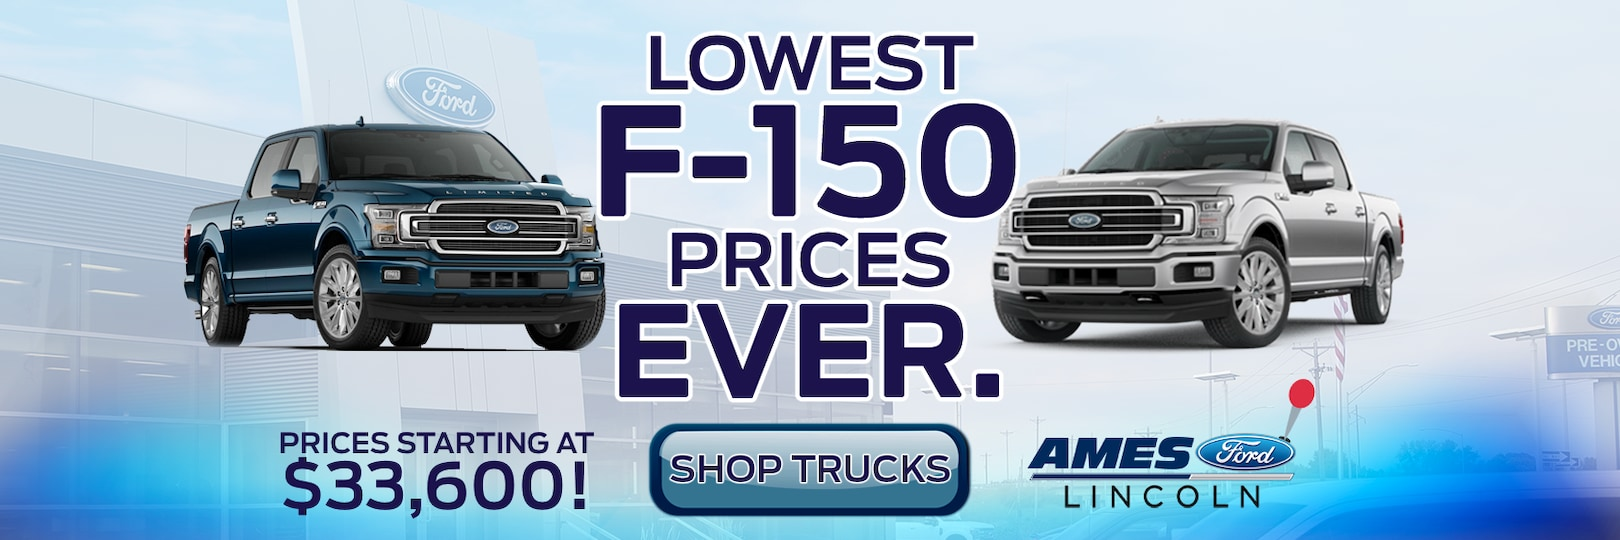 Ames Car Dealers >> Ames Ford Lincoln Ford Lincoln Dealership In Ames Ia